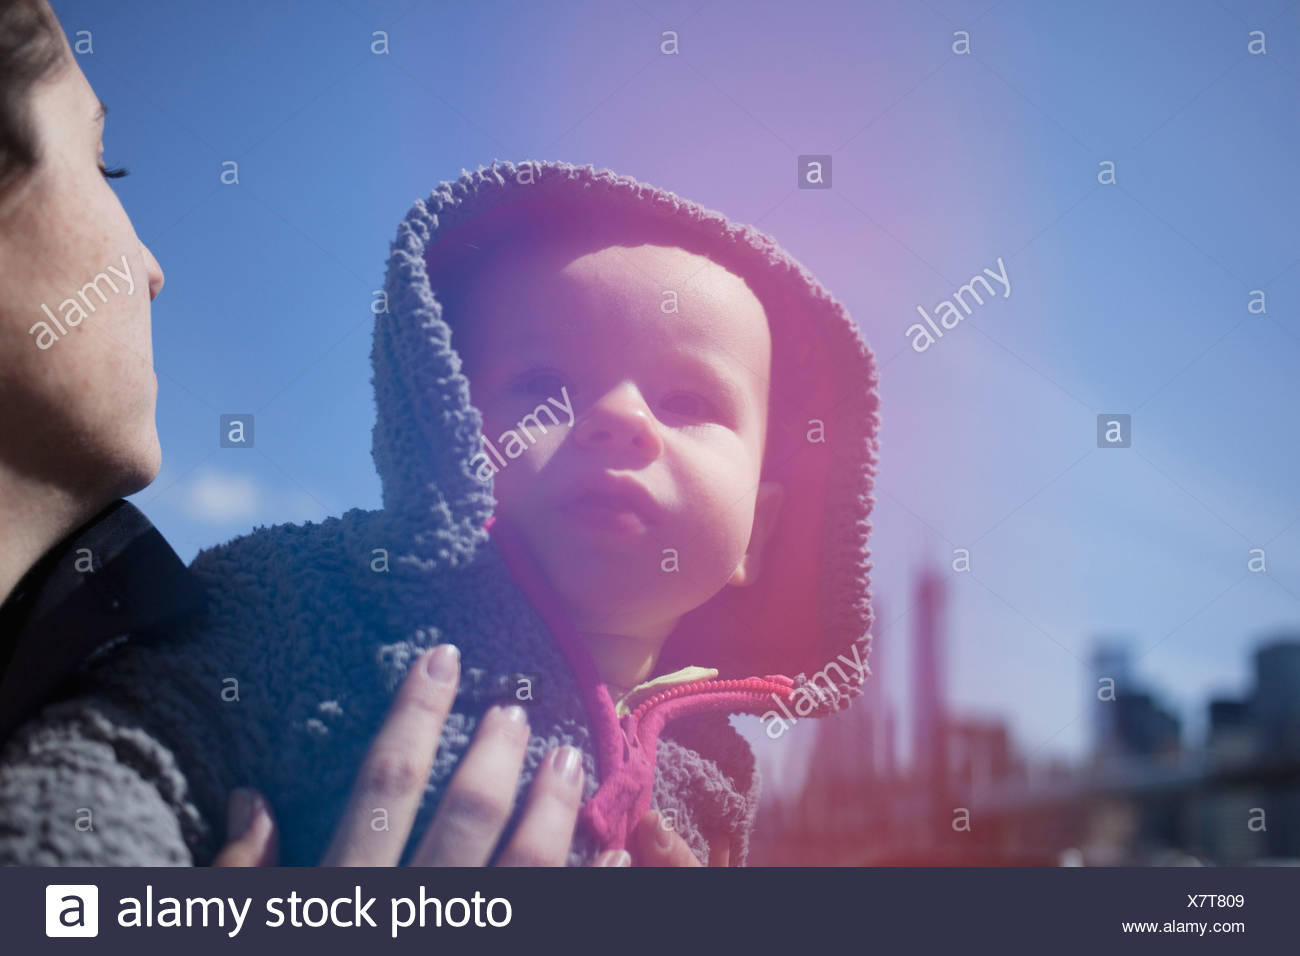 Mother holding daughter wearing hood Photo Stock